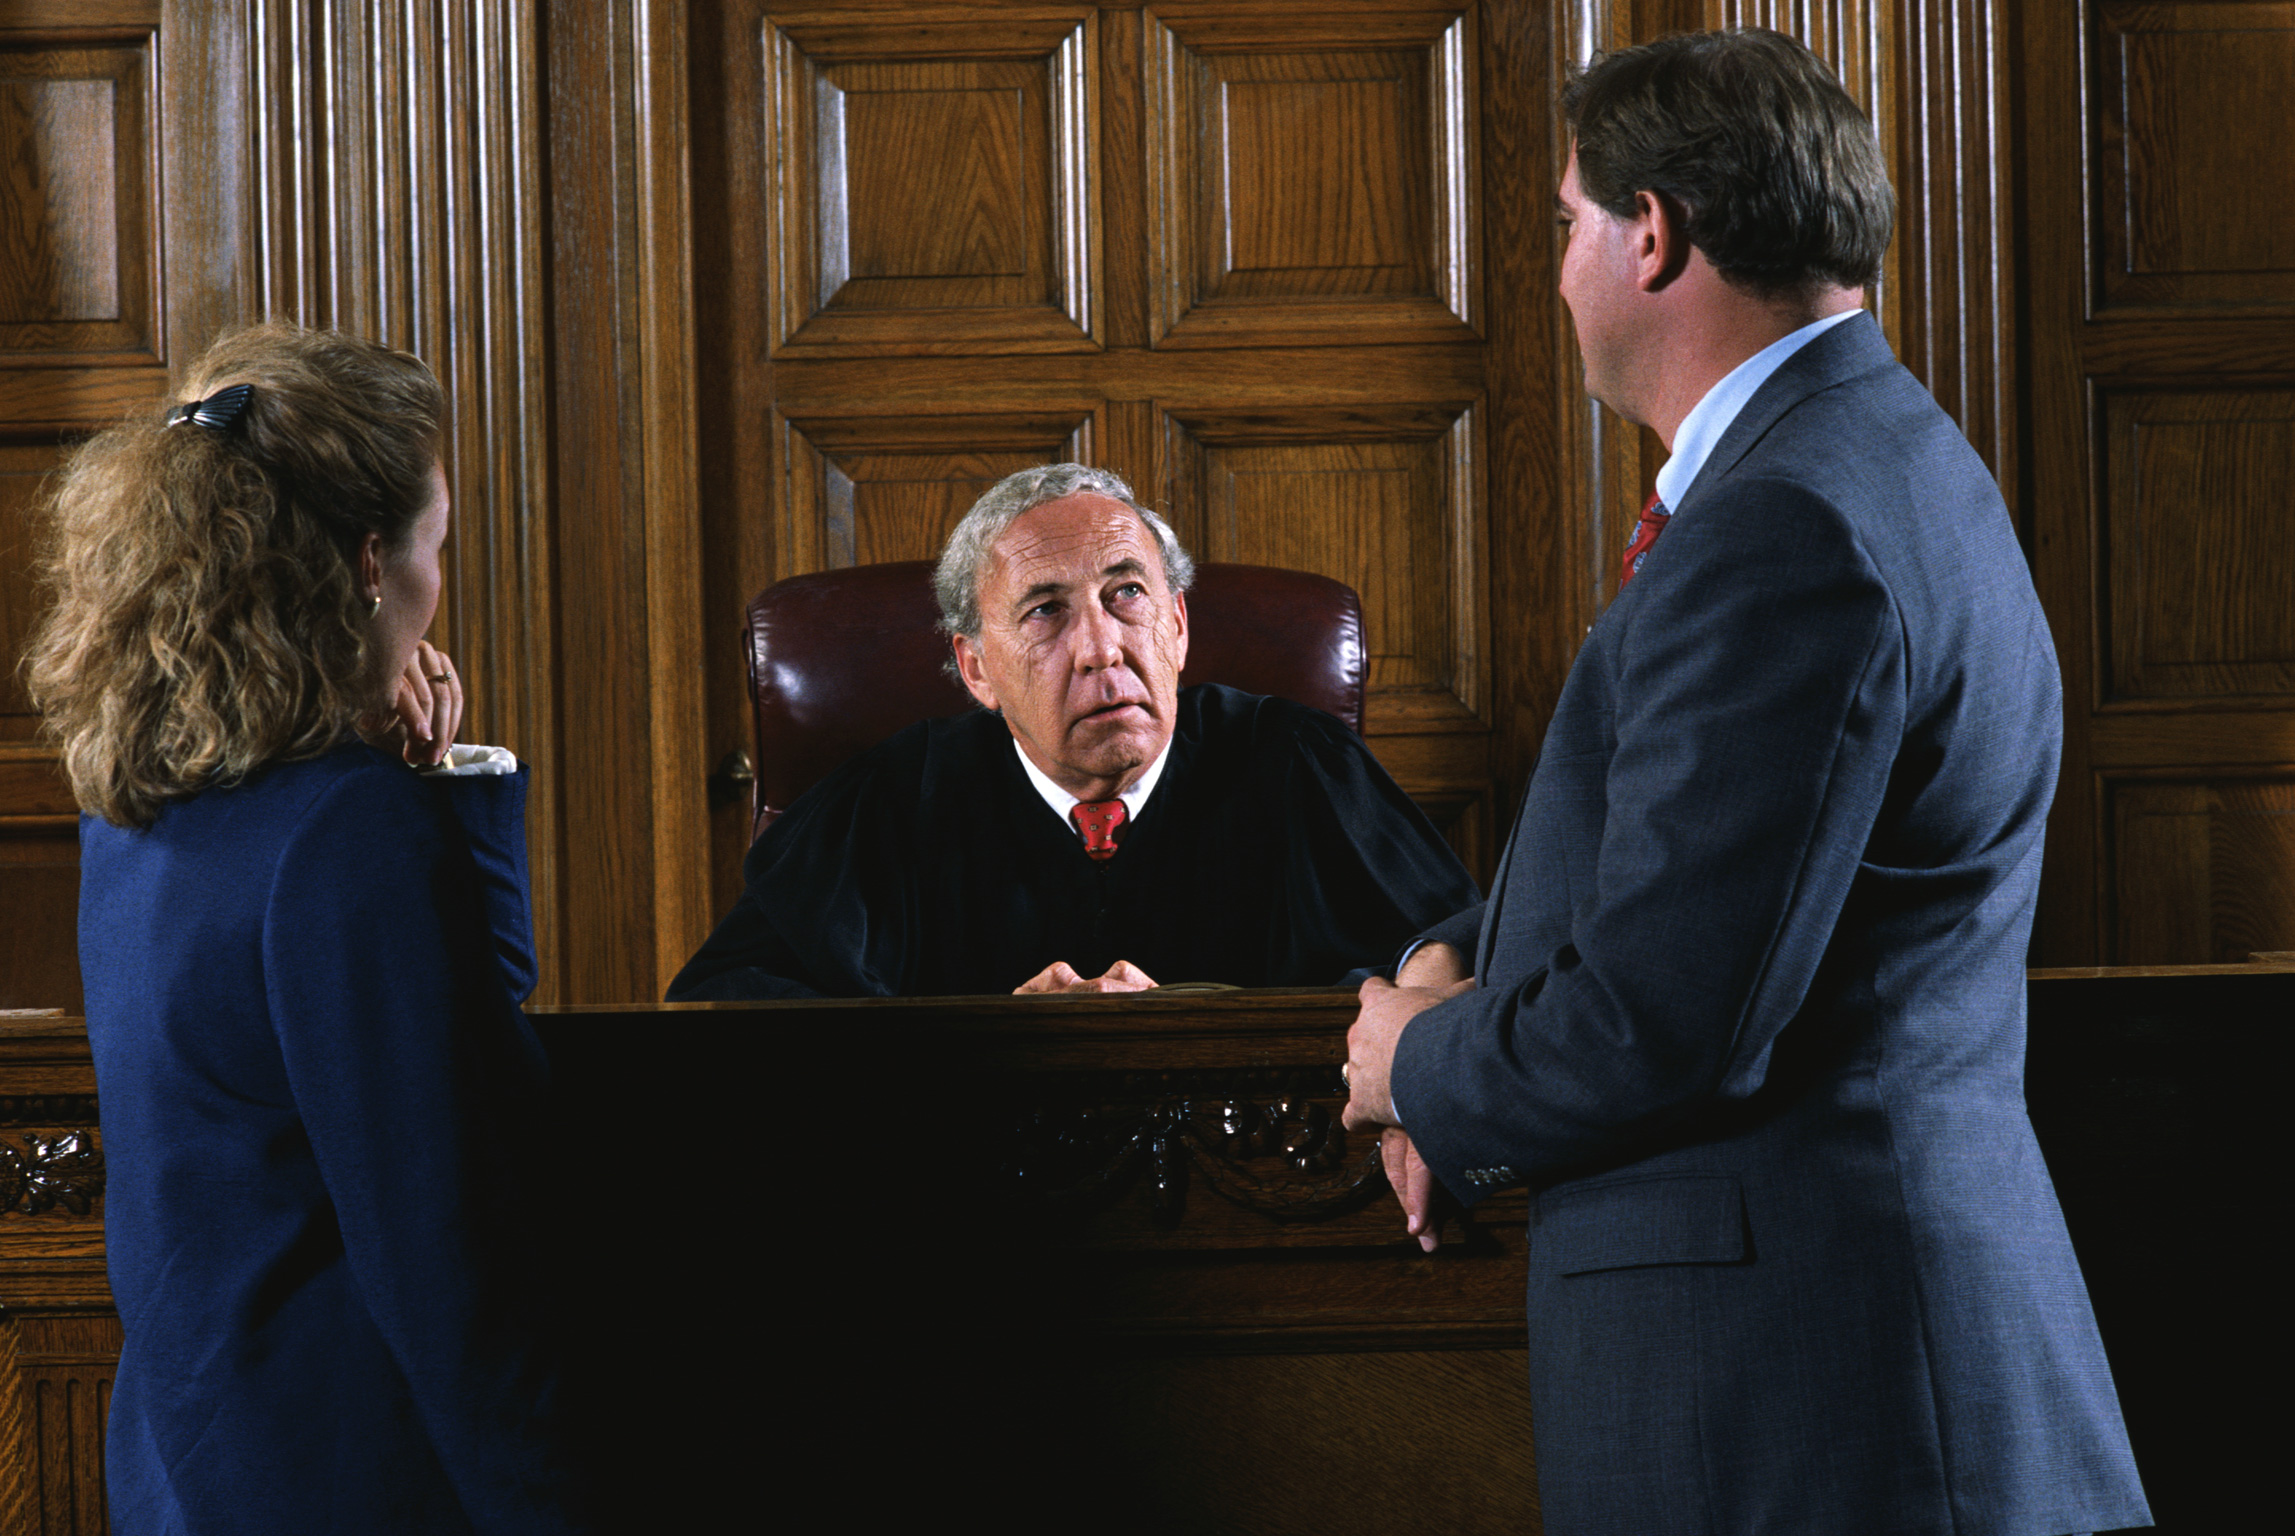 How To Choose A Good Dui Lawyer